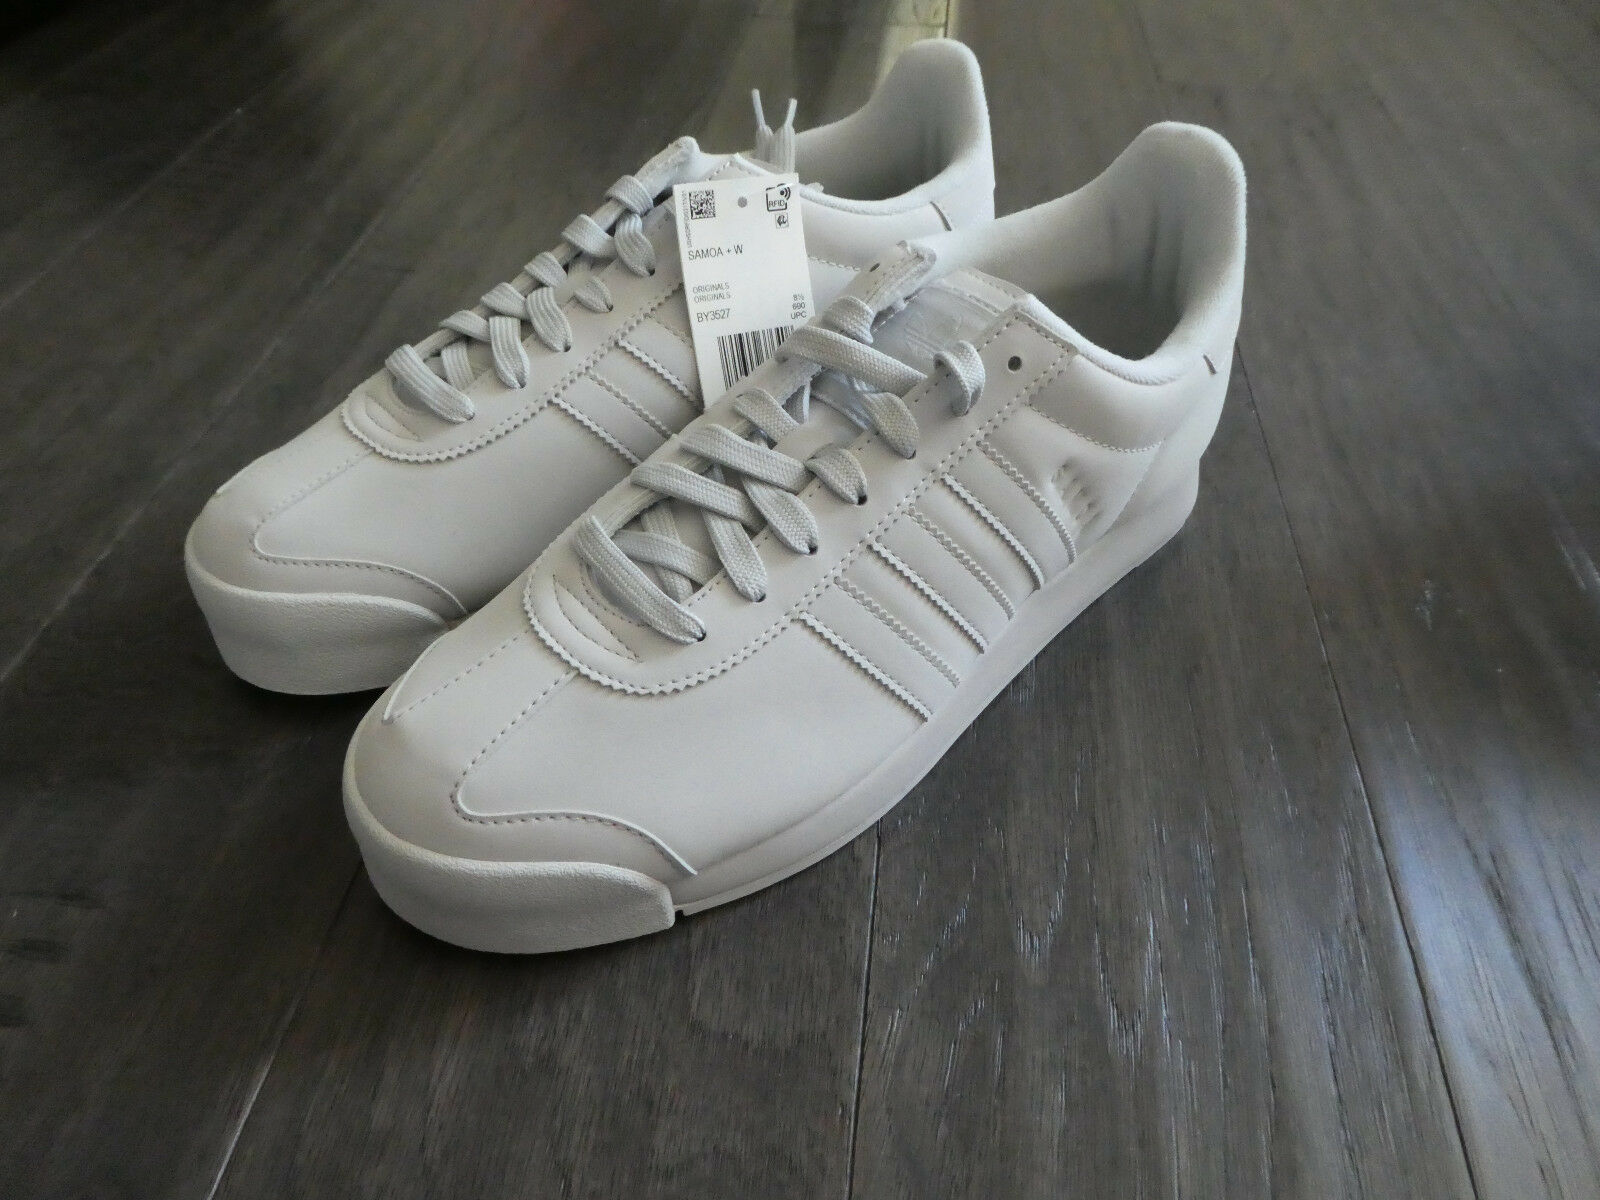 Adidas Women's Samoa + W shoes sneakers new BY3527 Grey Greone Seasonal price cuts, discount benefits